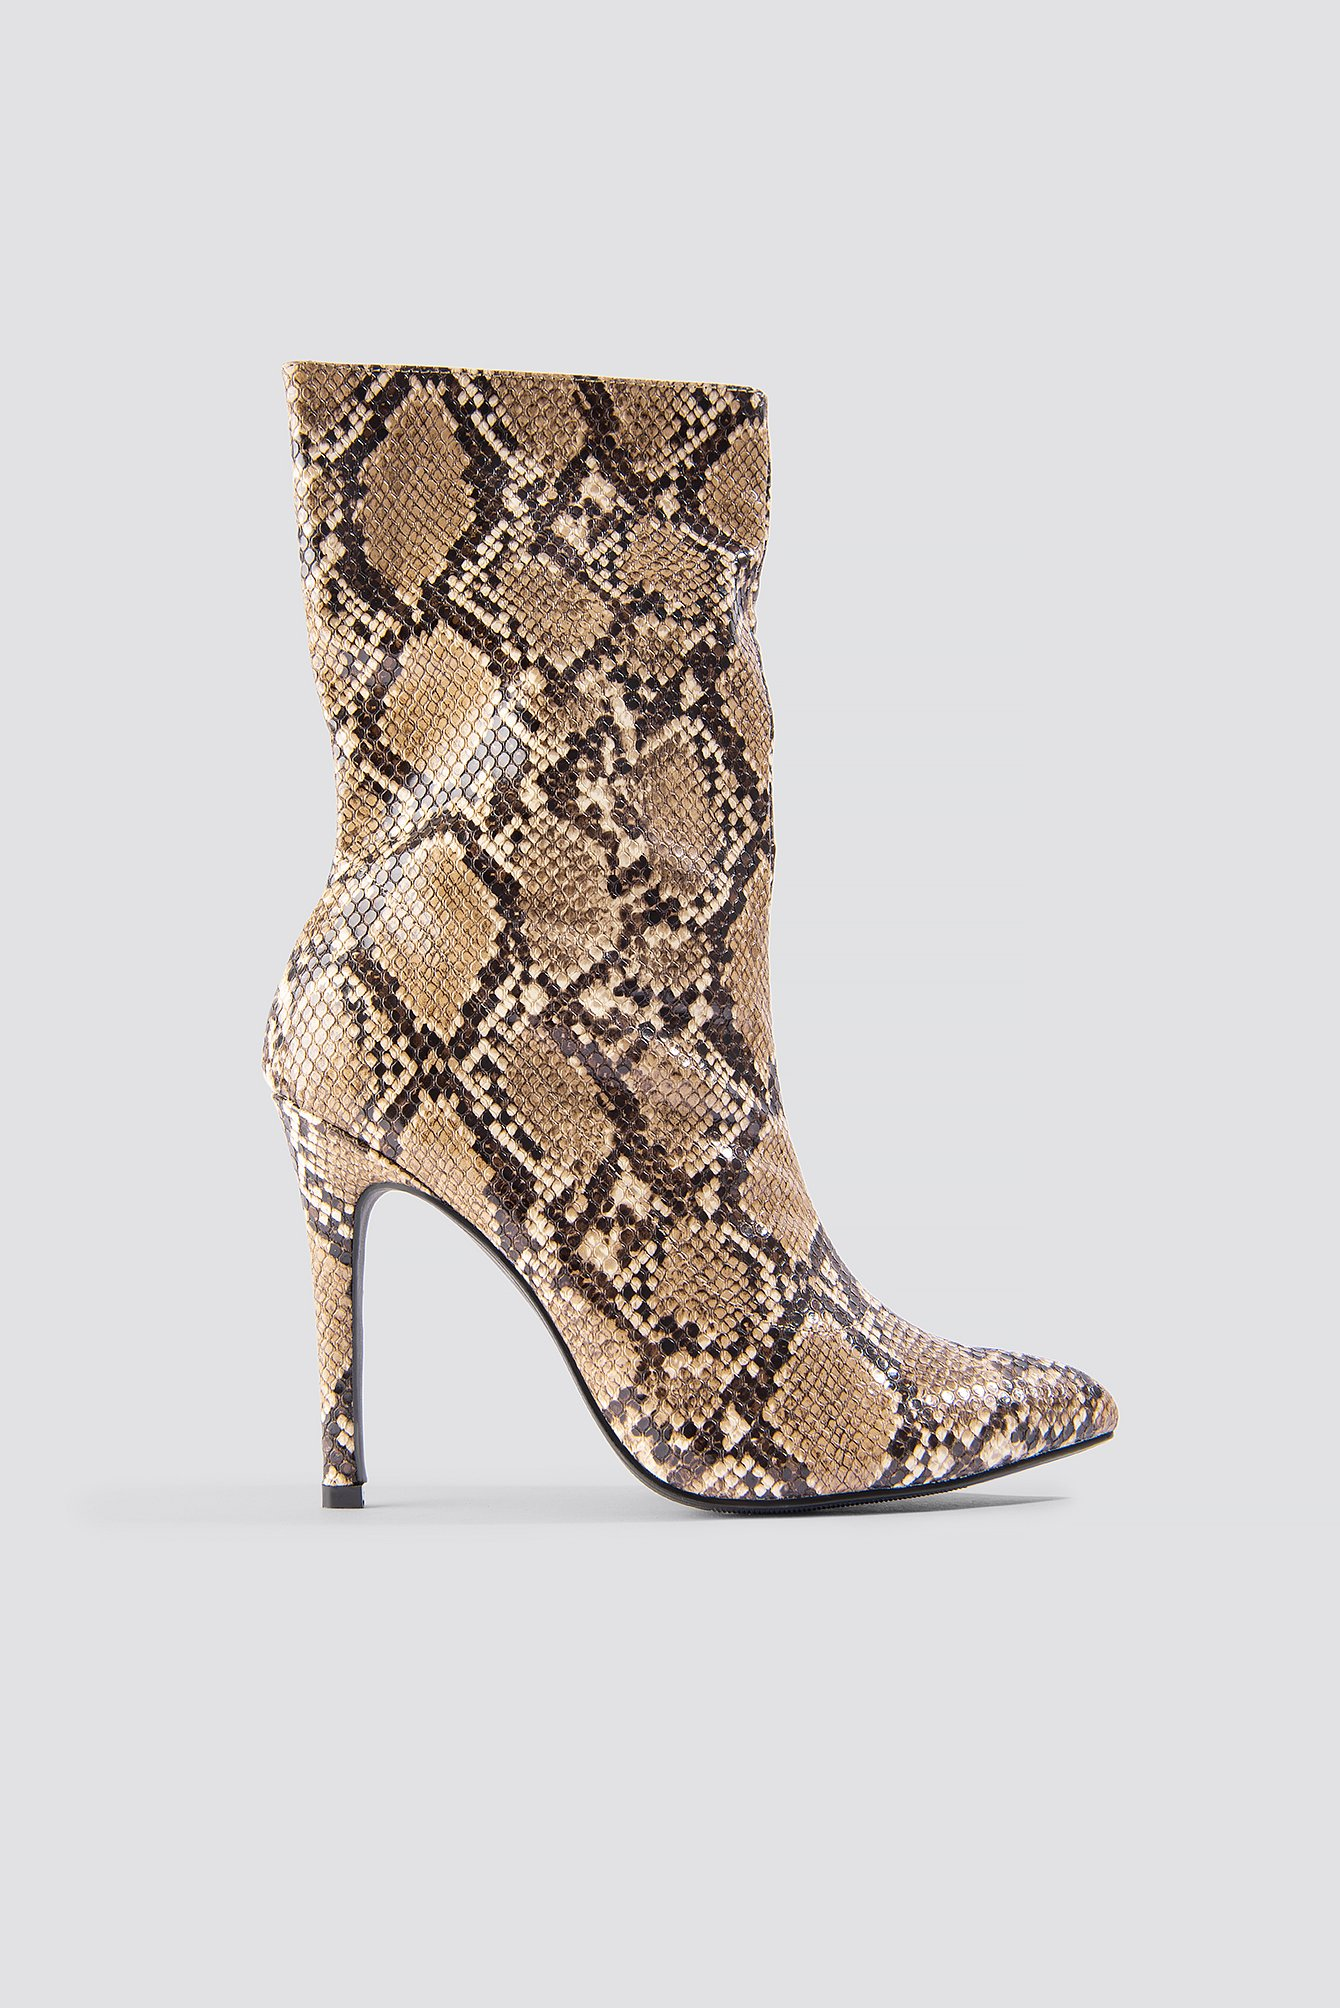 na-kd shoes -  High Heel Snake PU Stiletto Boot - Brown,Multicolor